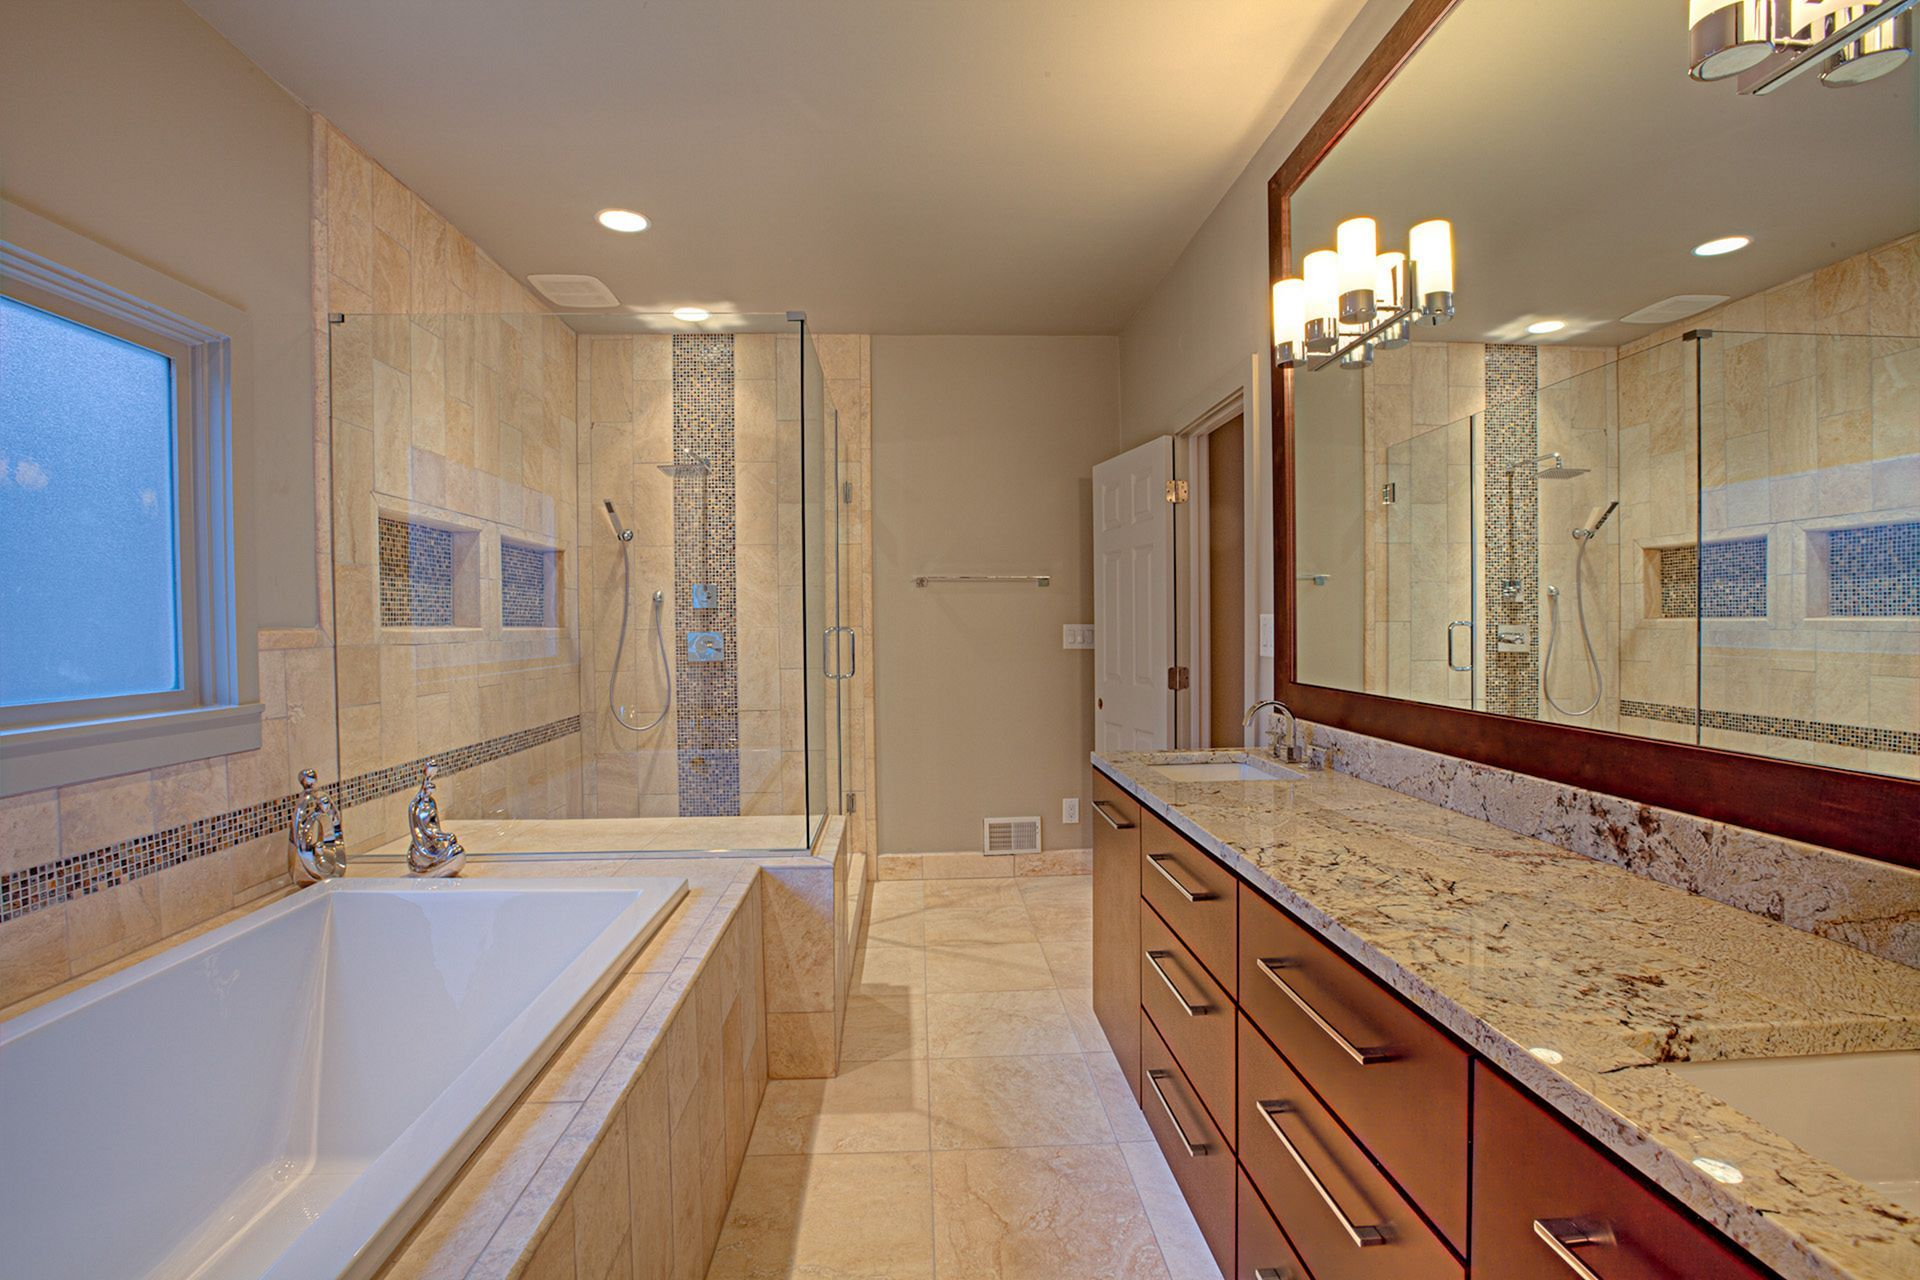 Majestic 22 Marvelous Master Bathroom Remodel Ideas For Your Big Home Https Usd Modern Master Bathroom Design Bathroom Remodel Master Bathroom Remodel Photos